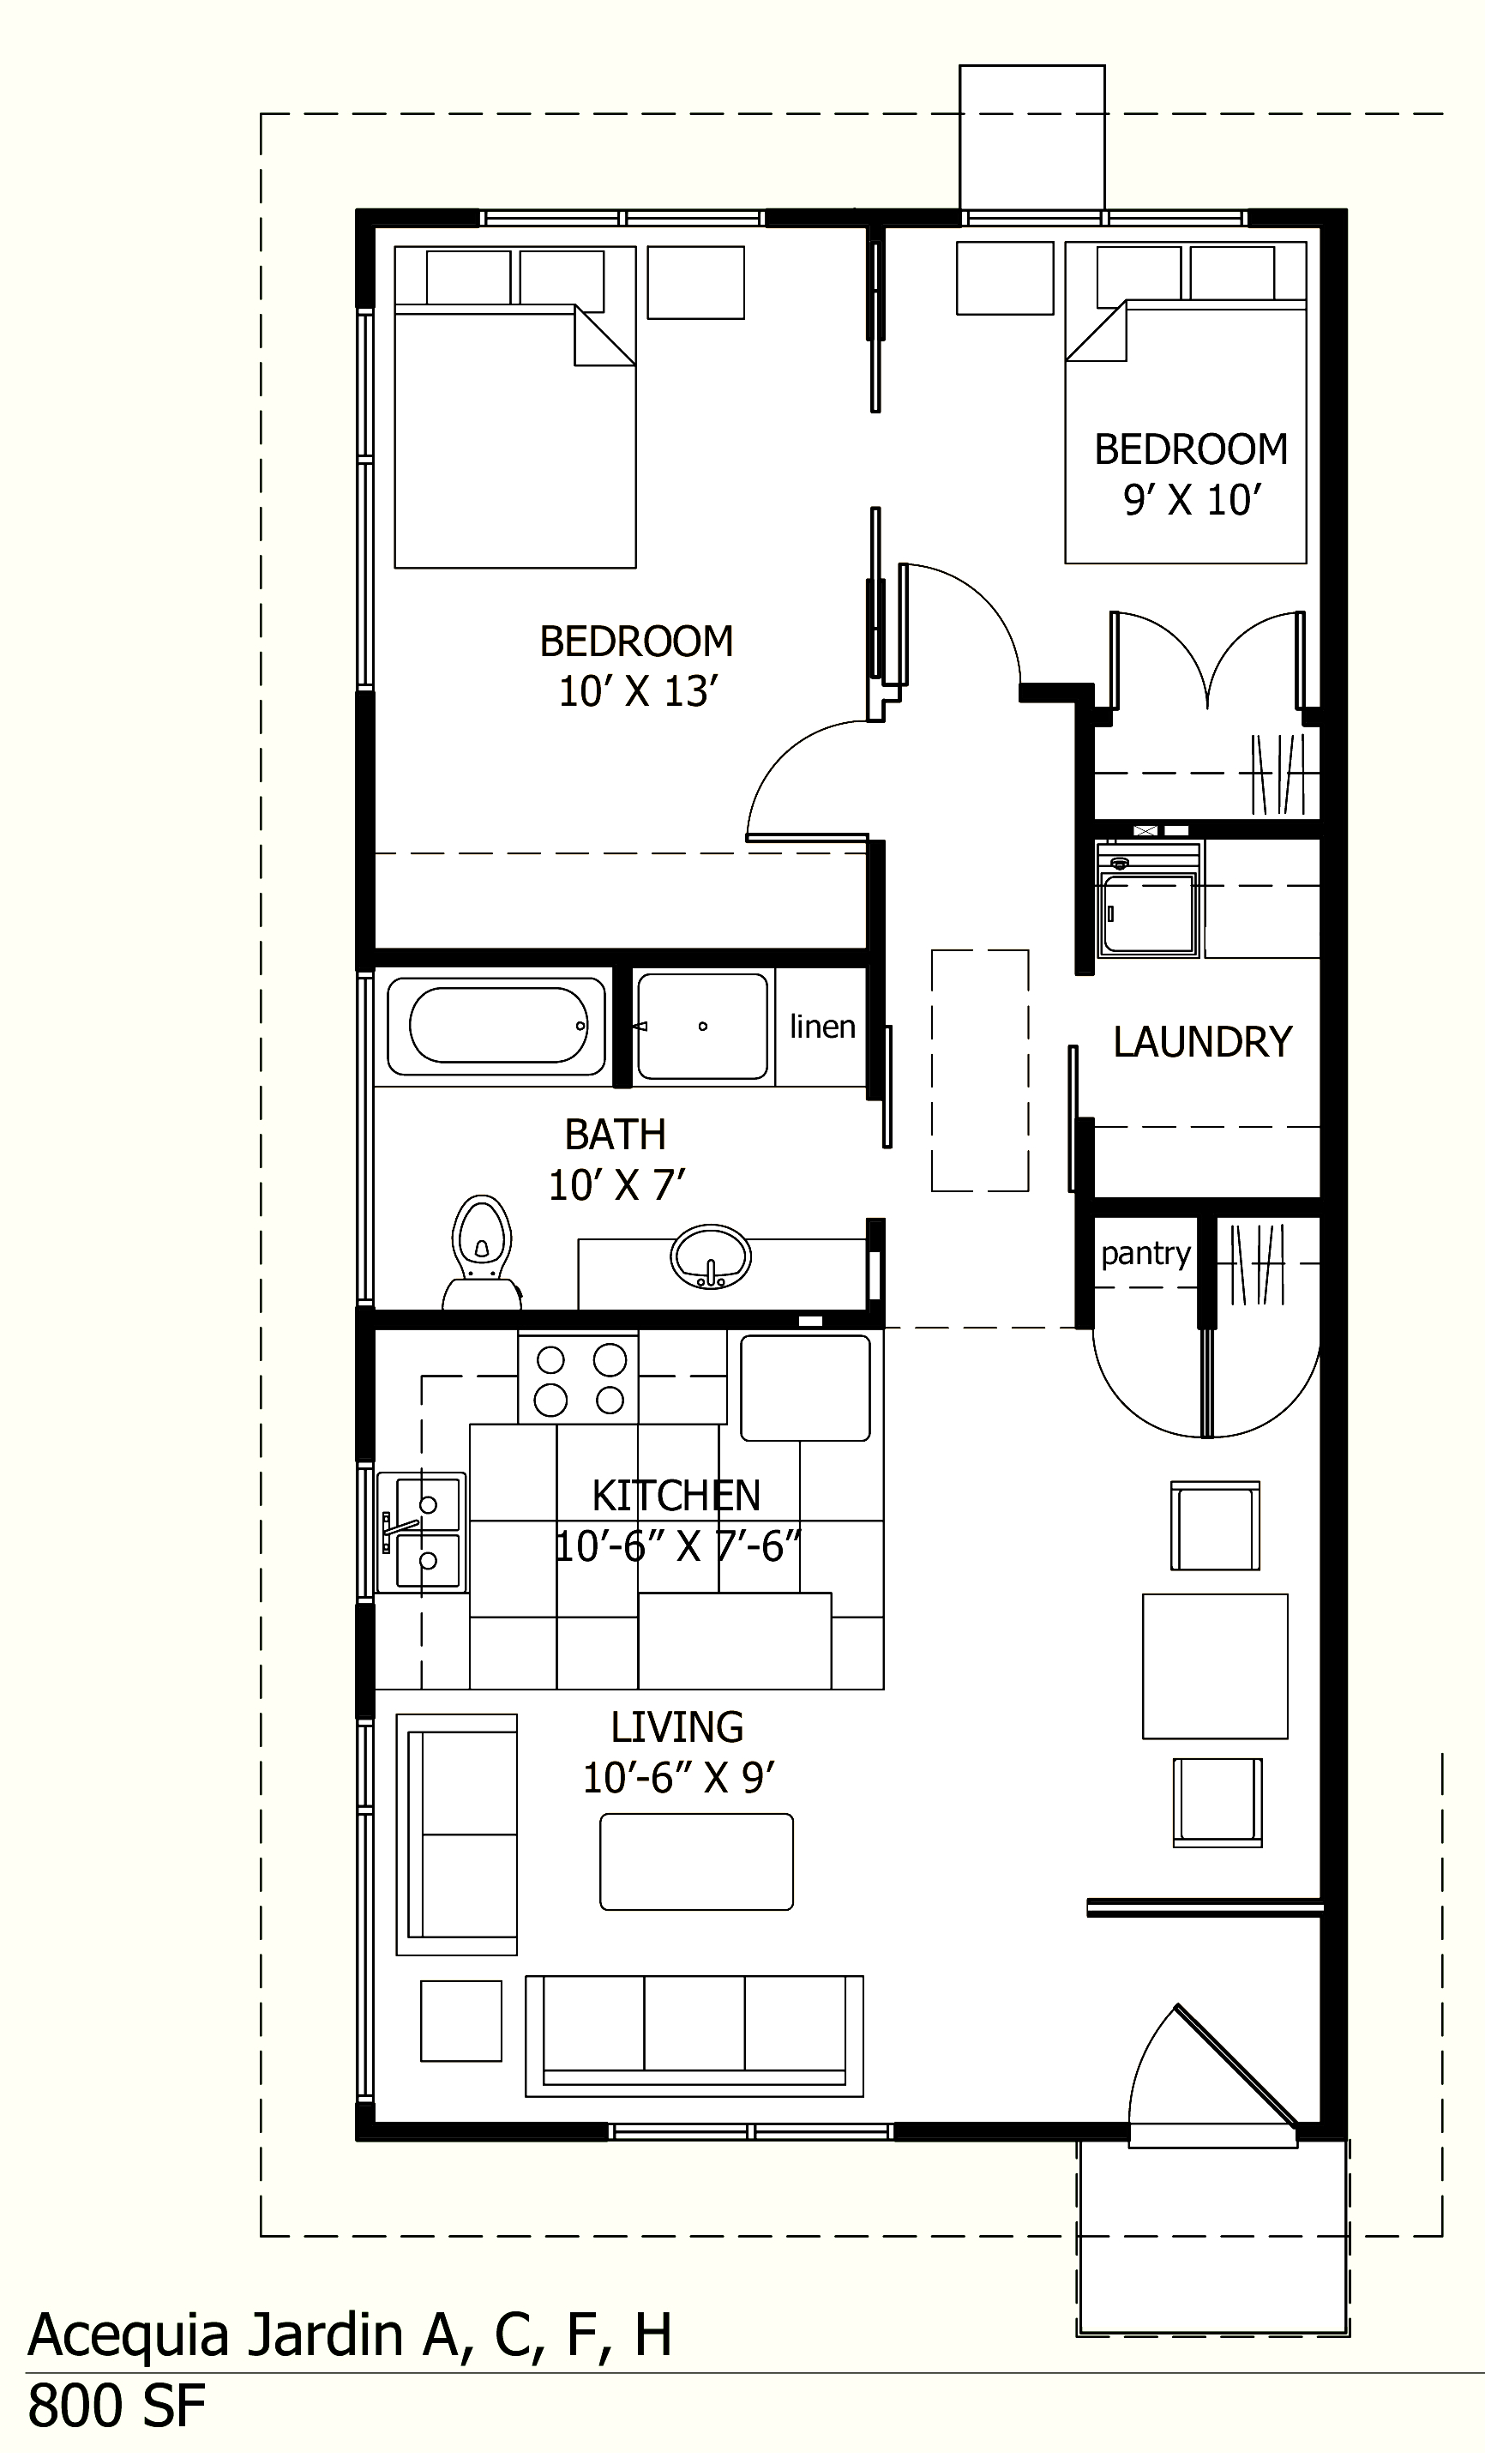 800 sq ft acequia jardin Small building plan